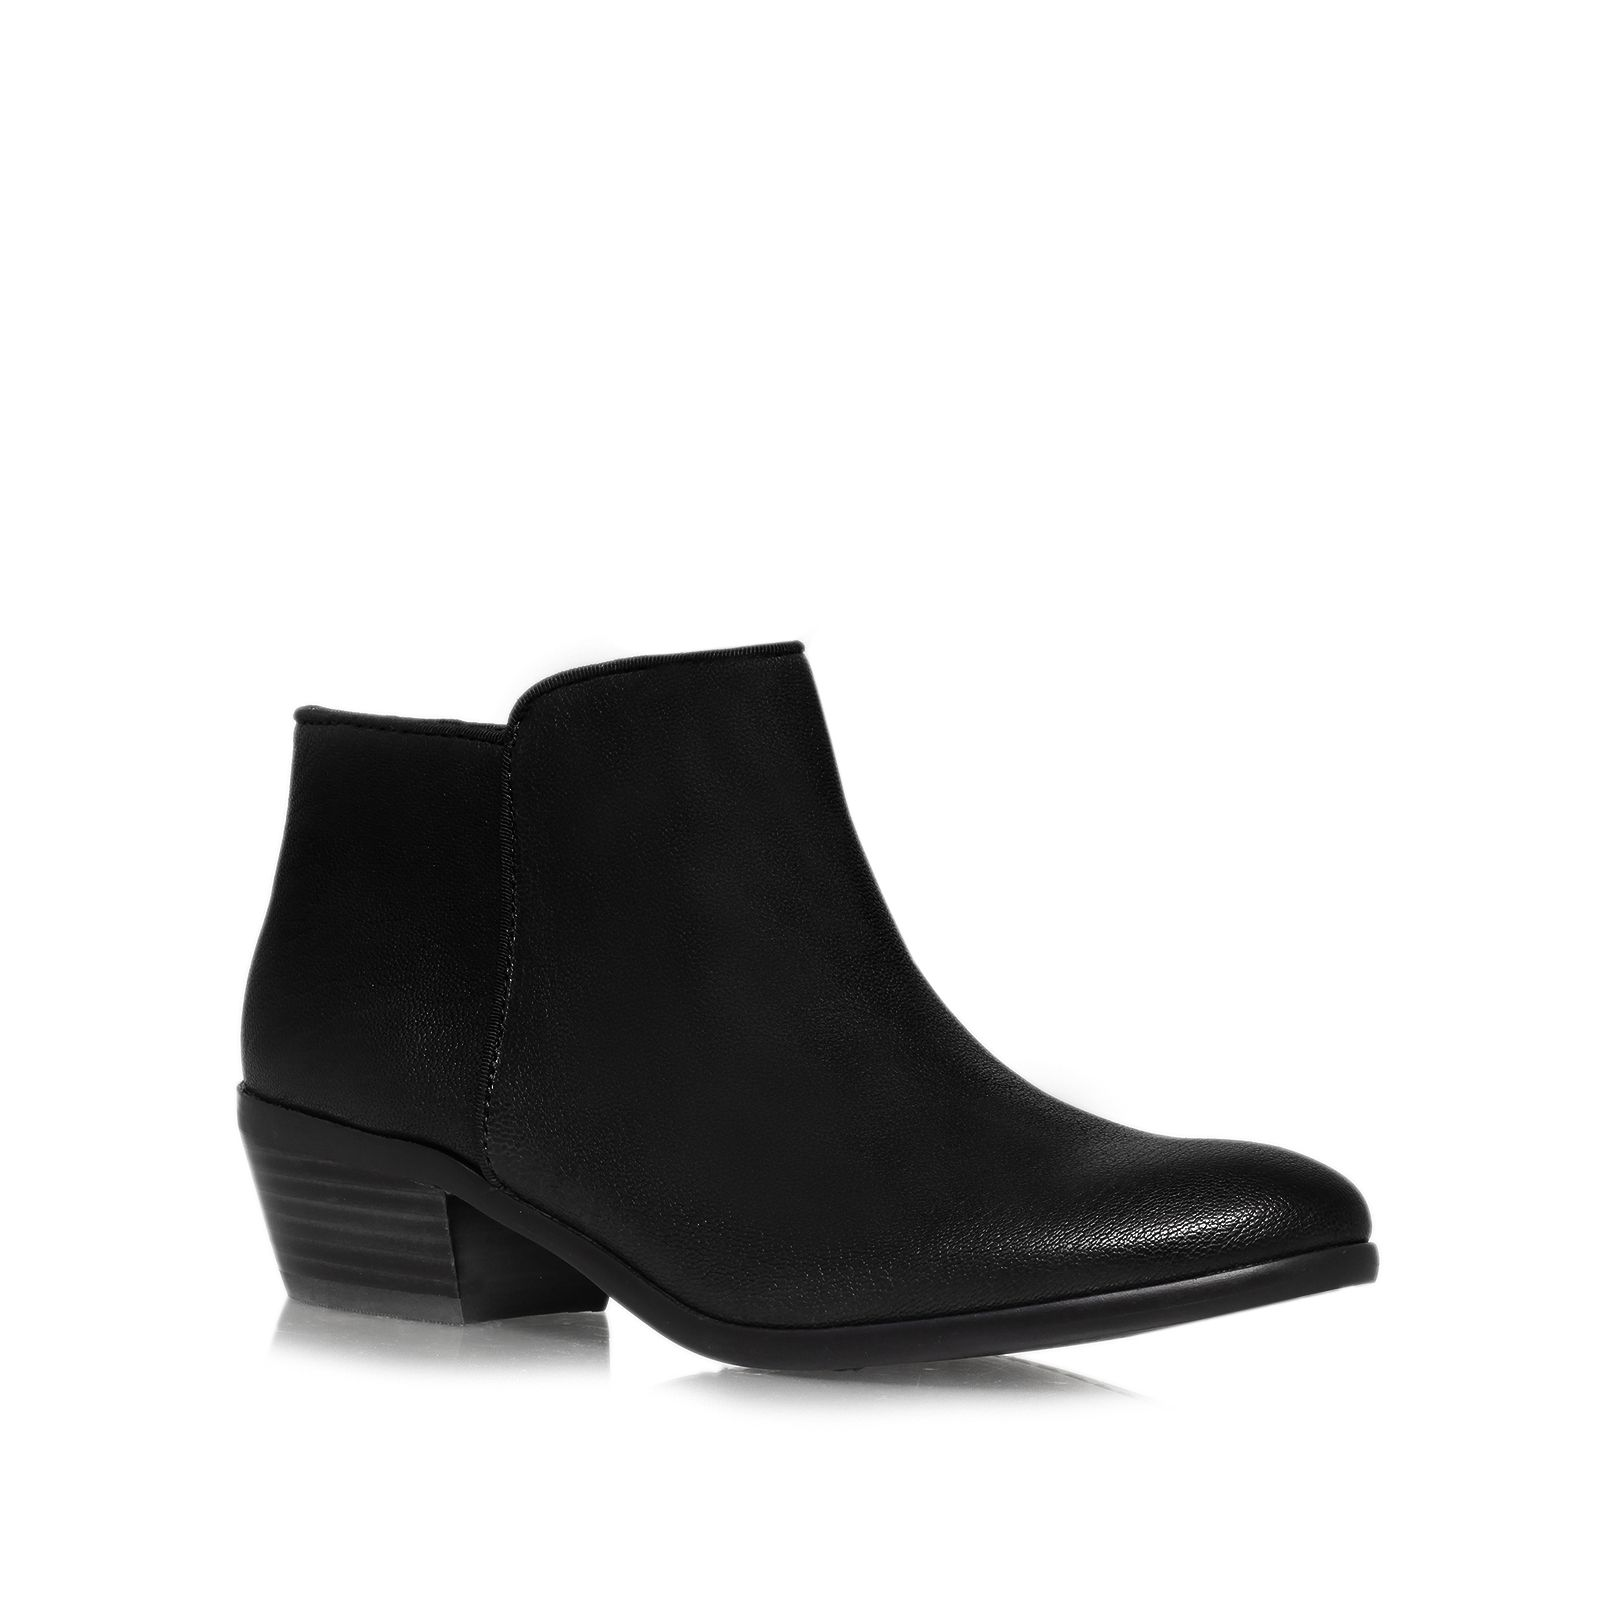 Sam Edelman Petty low heeled ankle boots